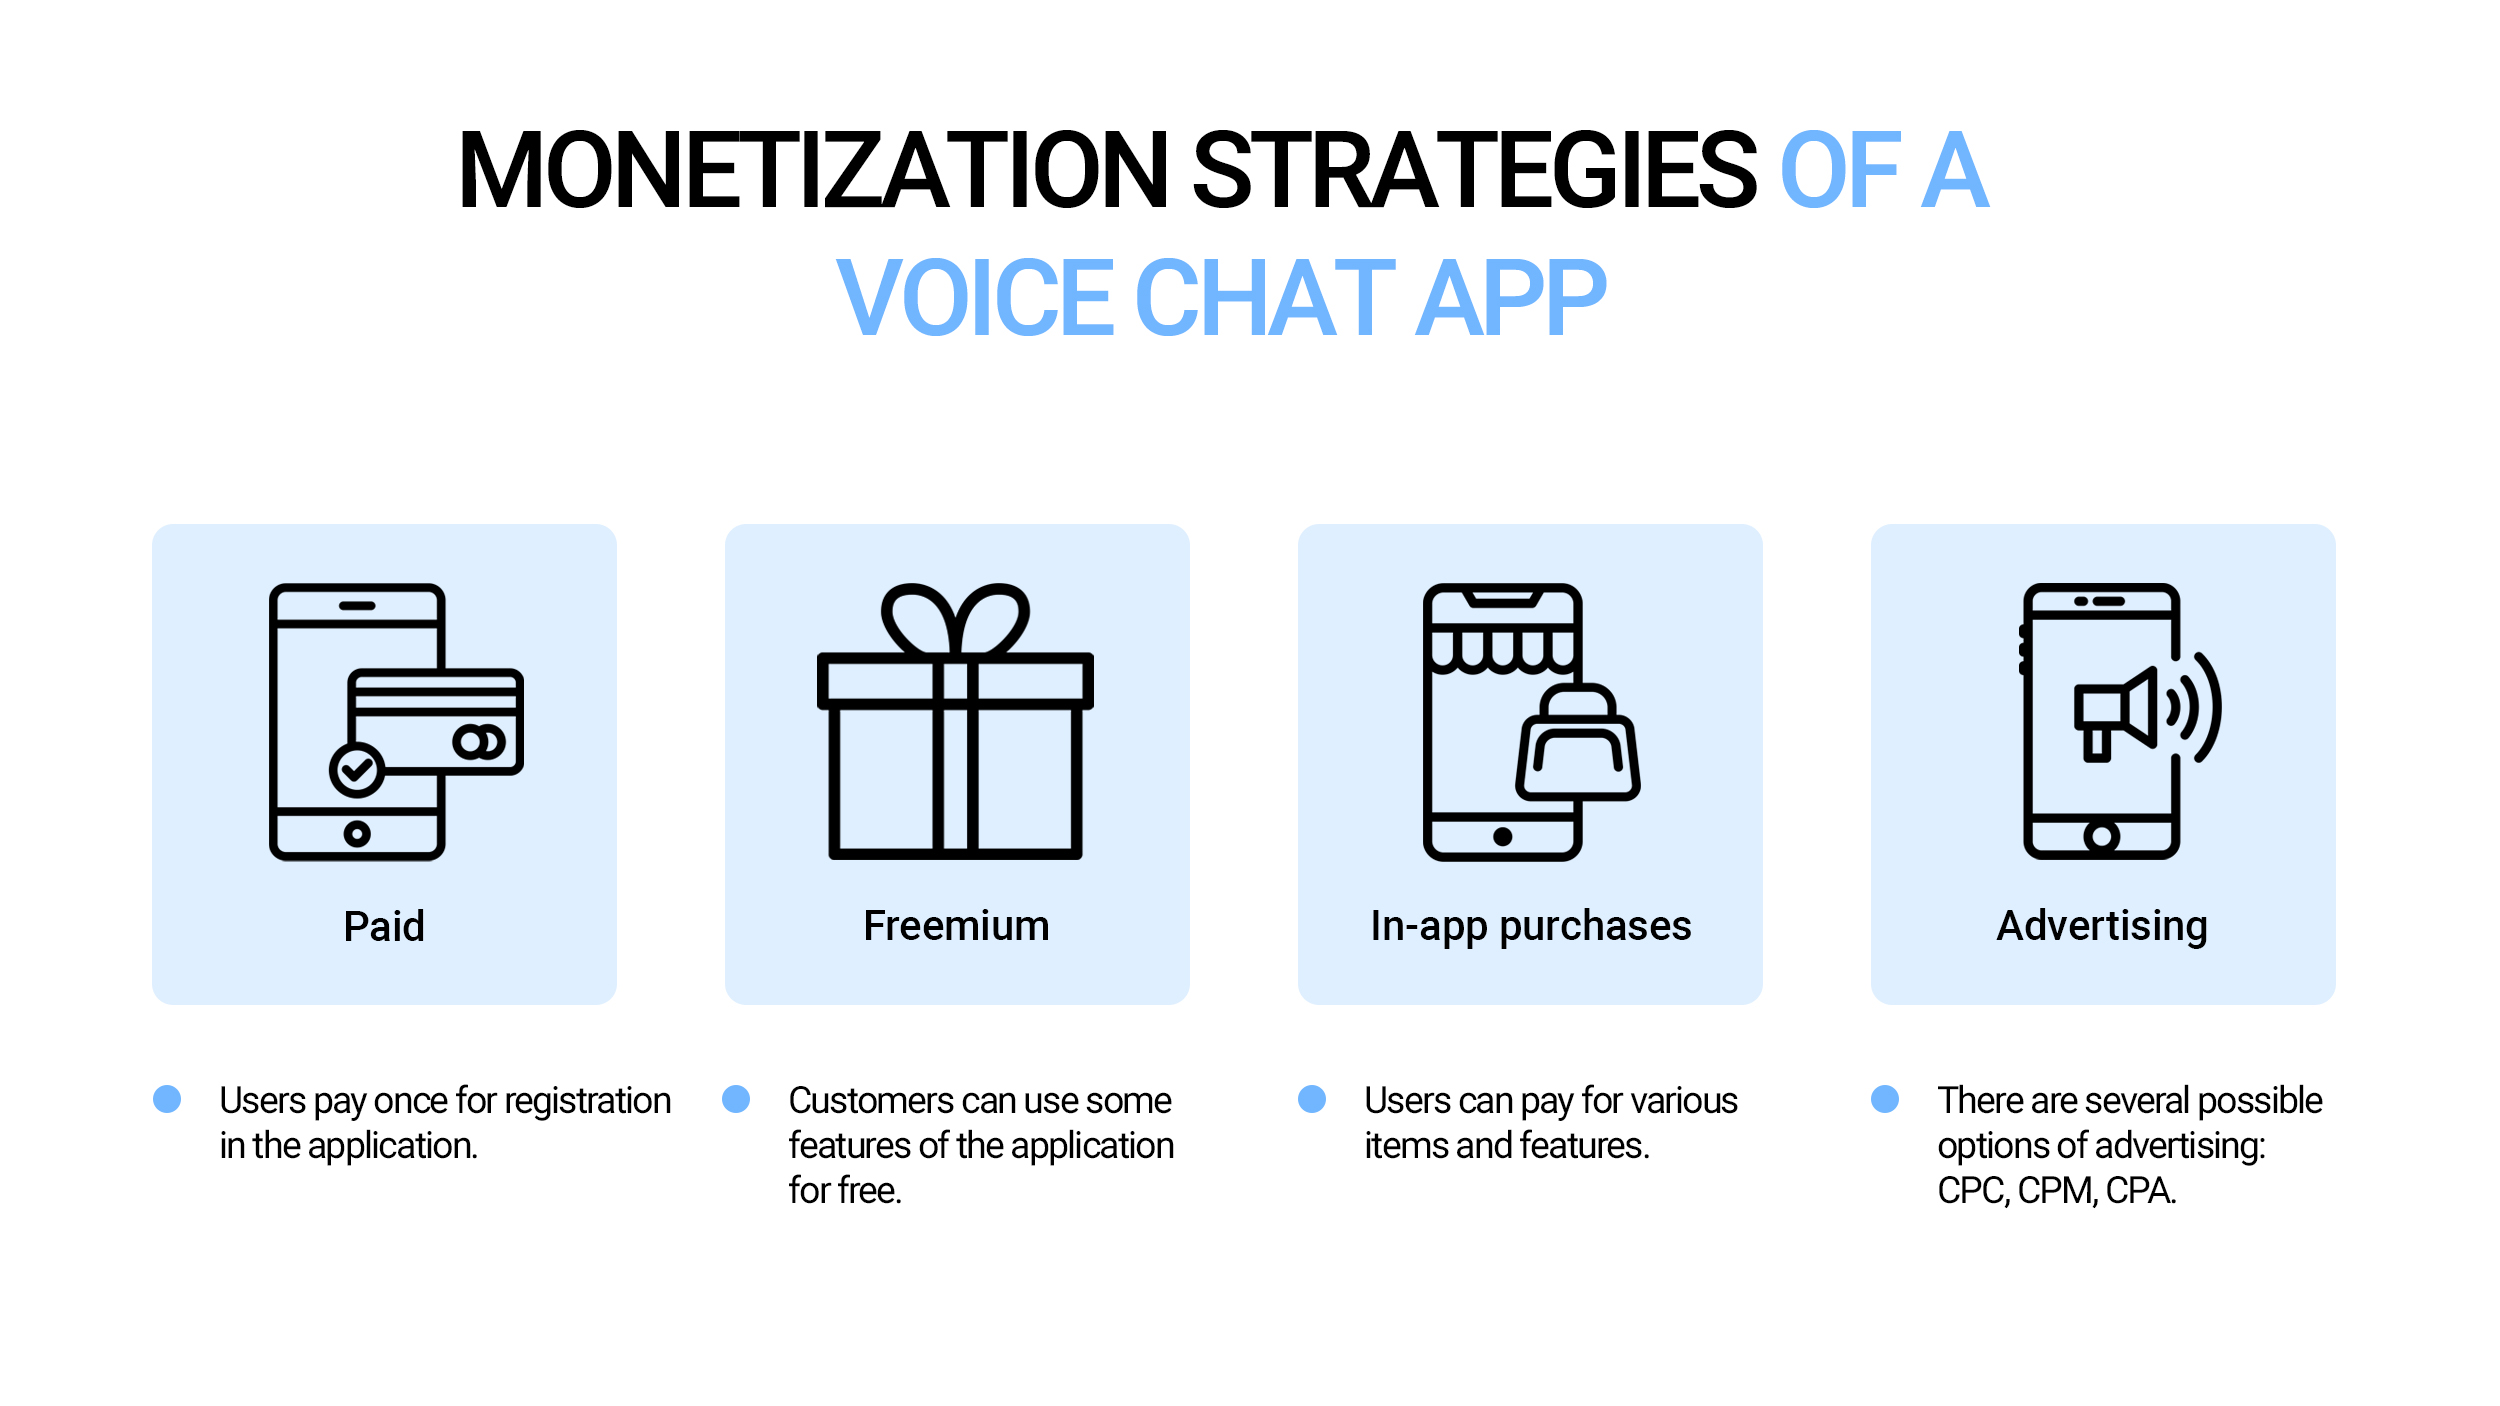 Monetization strategies of a voice chat app